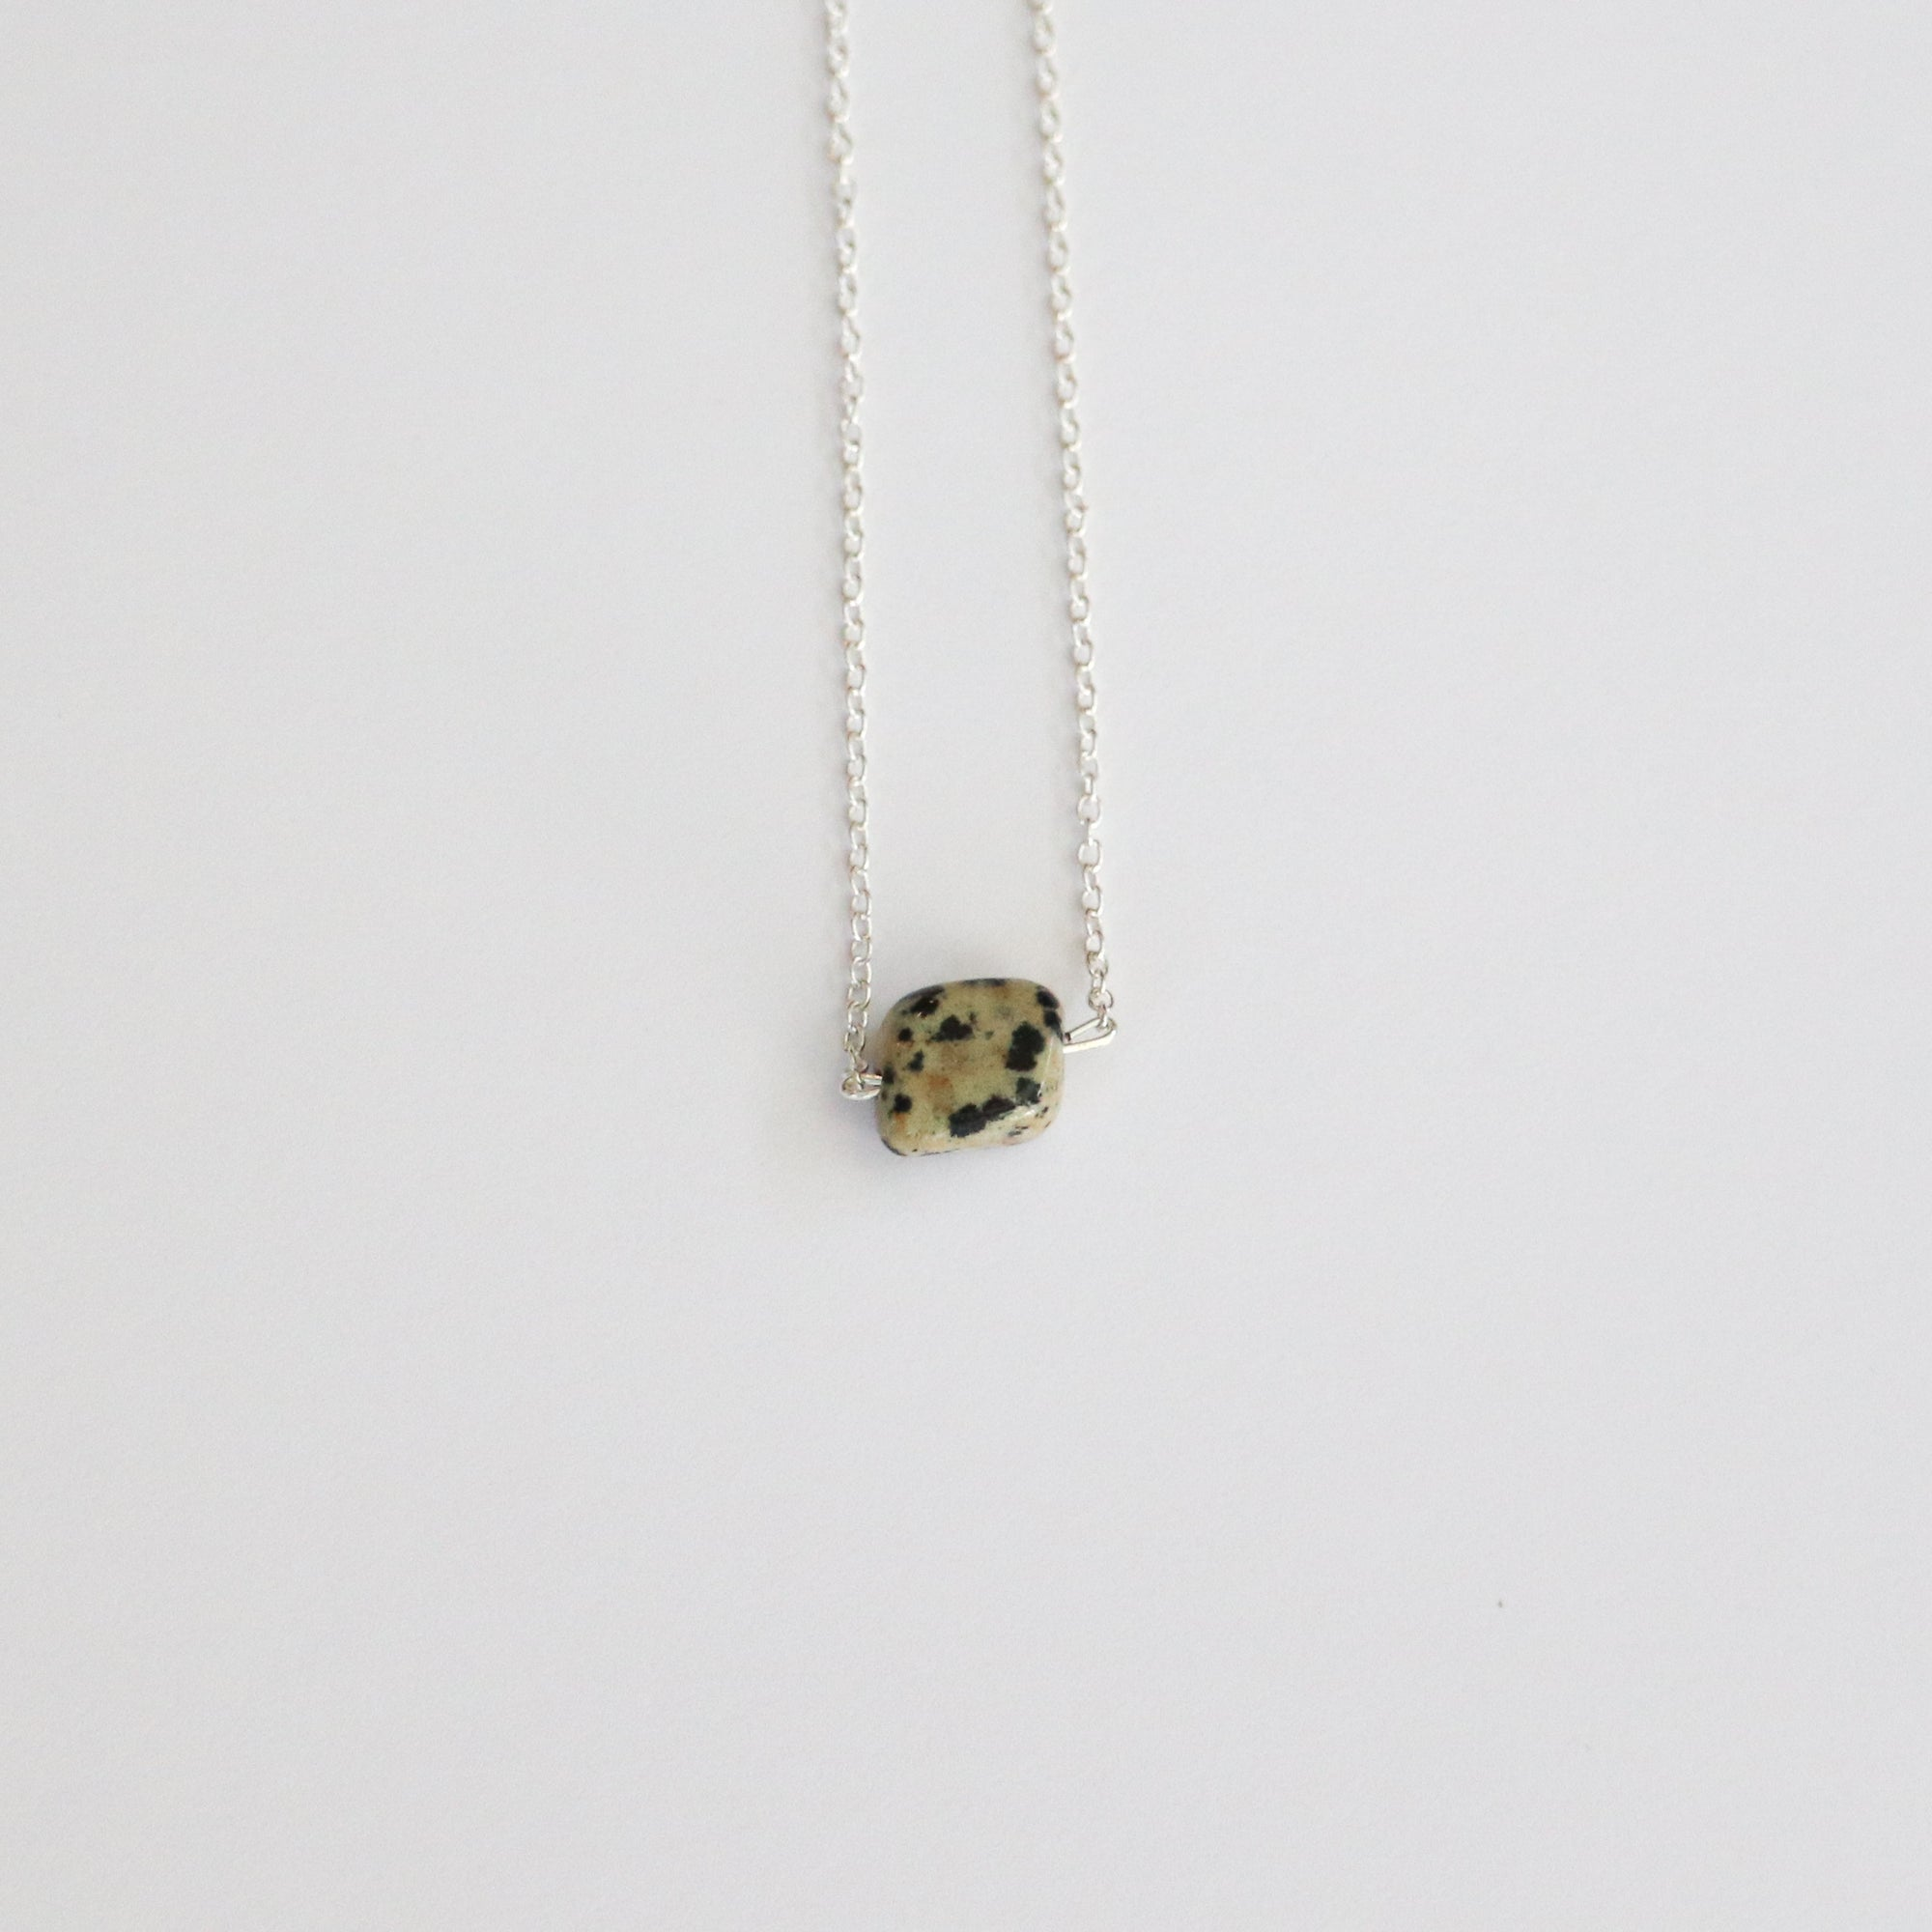 Dalmatian Jasper Sterling Silver Necklace